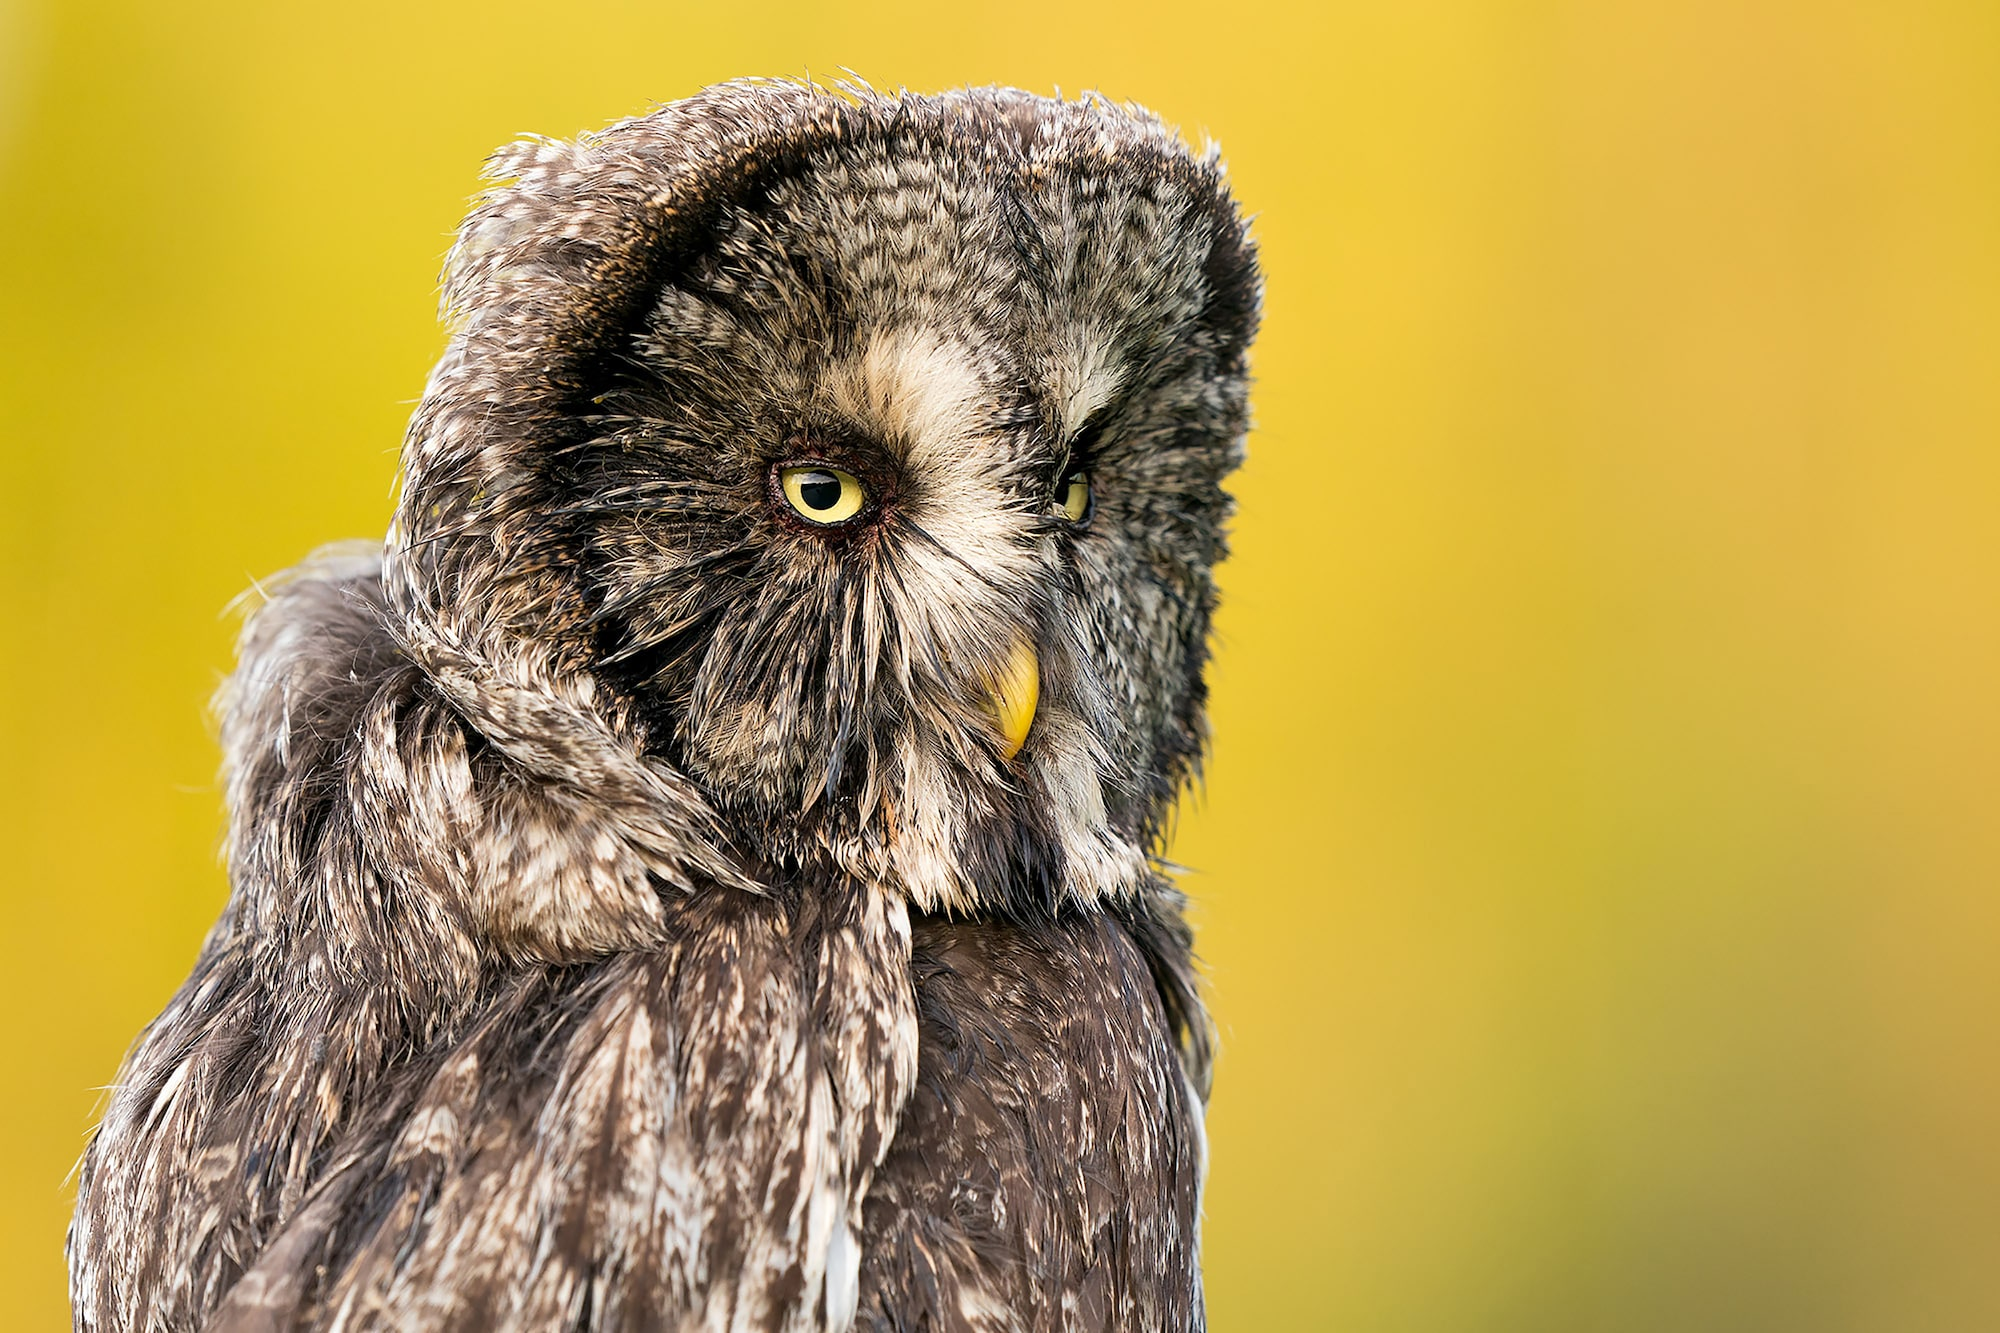 floris smeets sony alpha 9 grey owl in three quarter profile against a yellow background